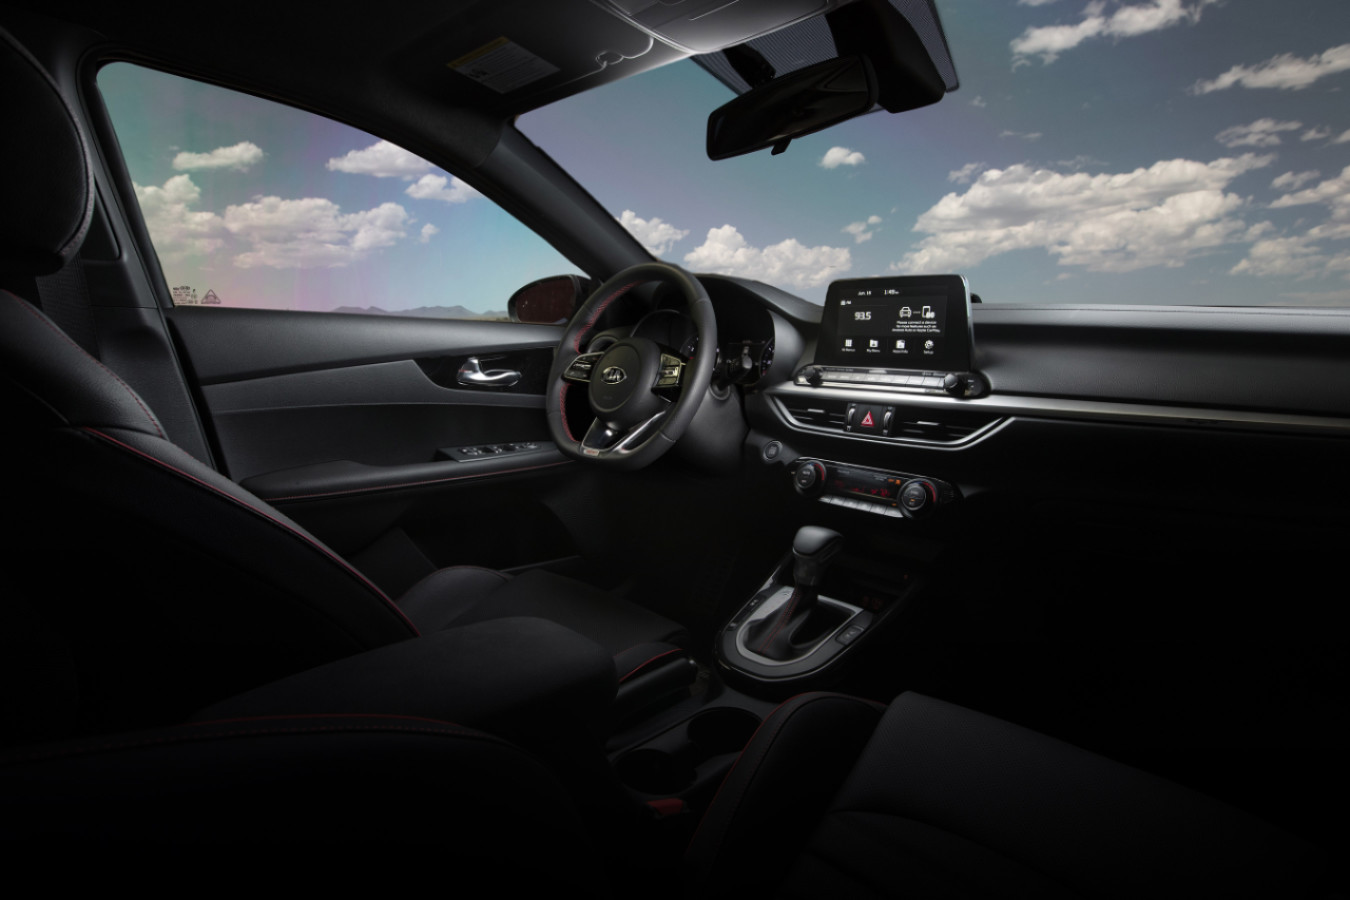 Accommodating Cabin of the 2020 Kia Forte